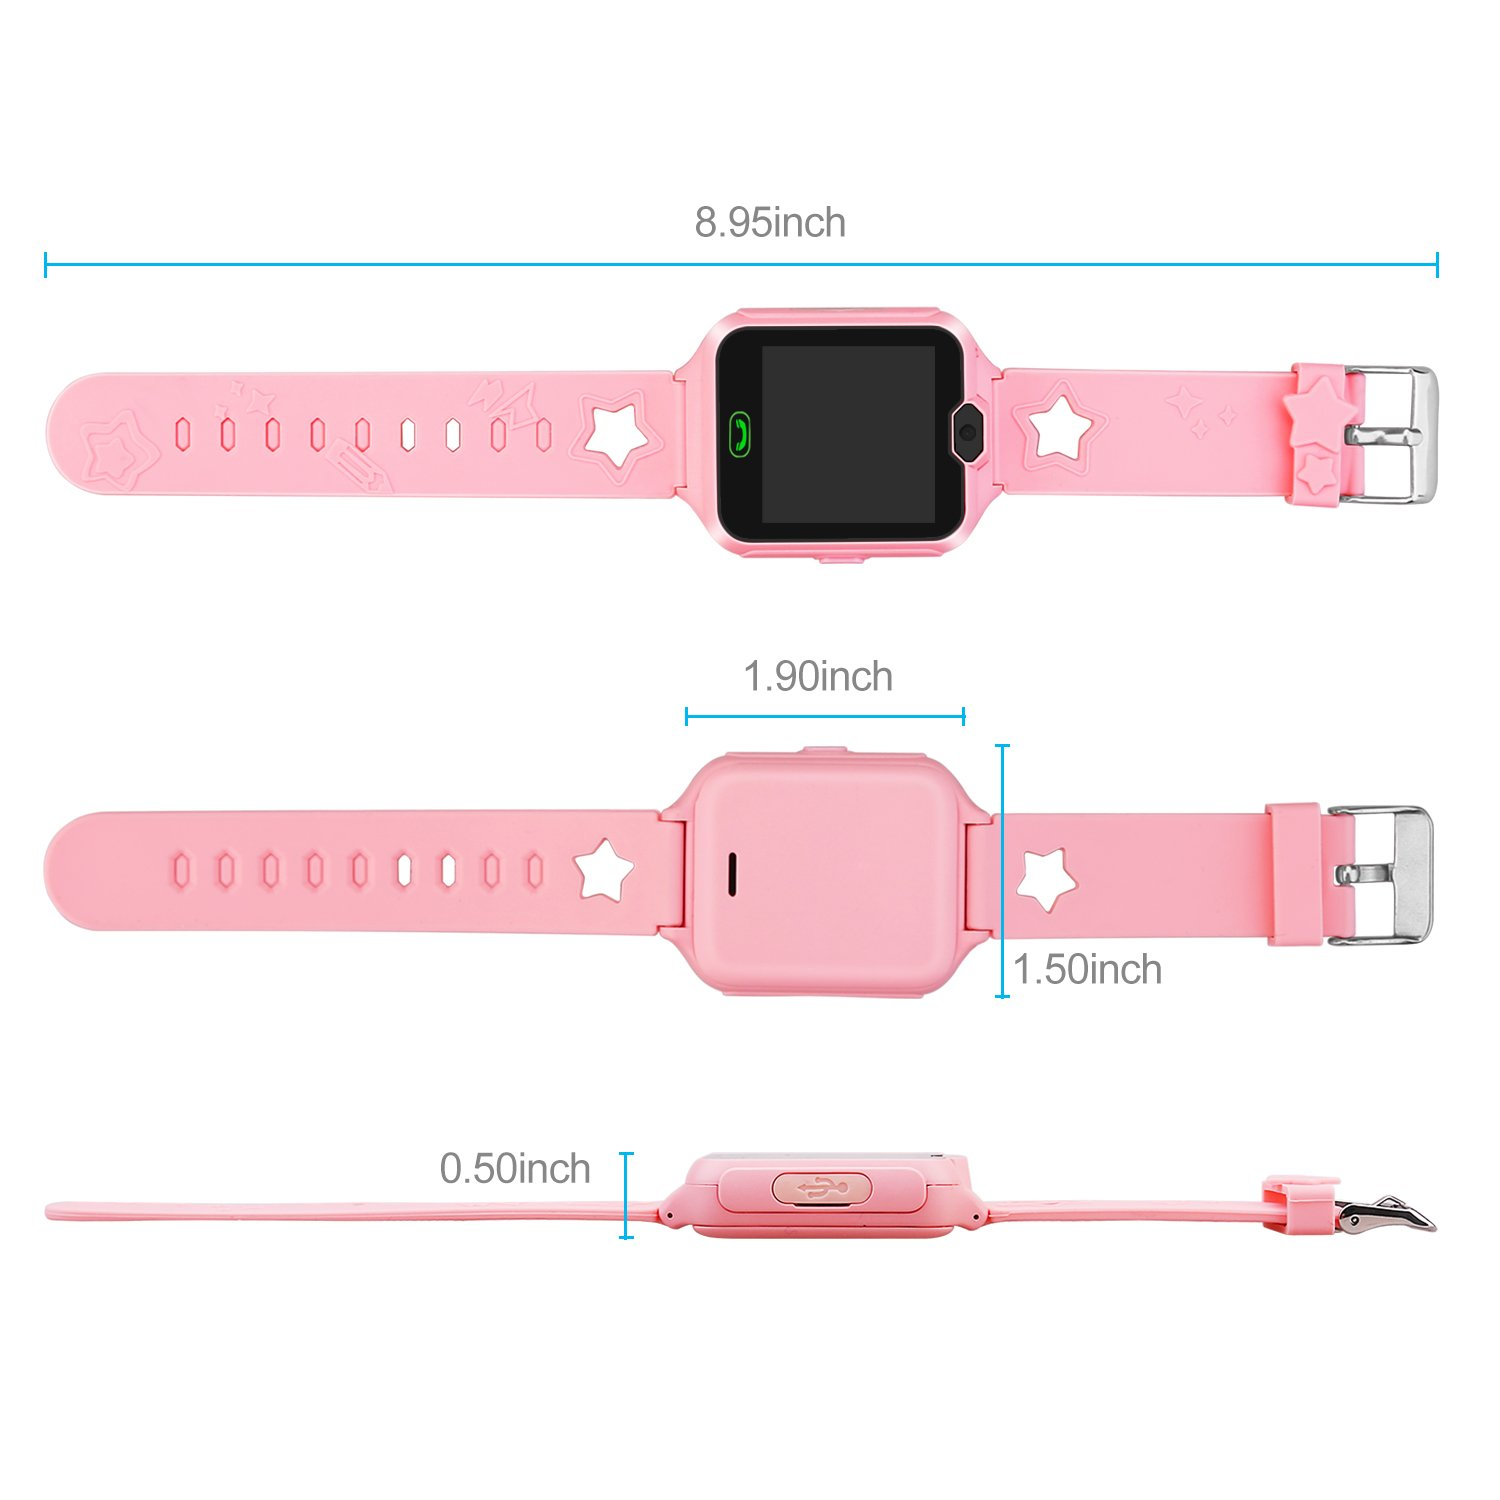 Kids Smart Watch Phone,Unlocked Waterproof Smart Phone Watch for Girls Boys with Camera Games Touchscreen,Children SOS Cell Phone Watch with SIM and SD Slot,Perfect Holiday Birthday Gifts(Pink) by MIMLI (Image #5)